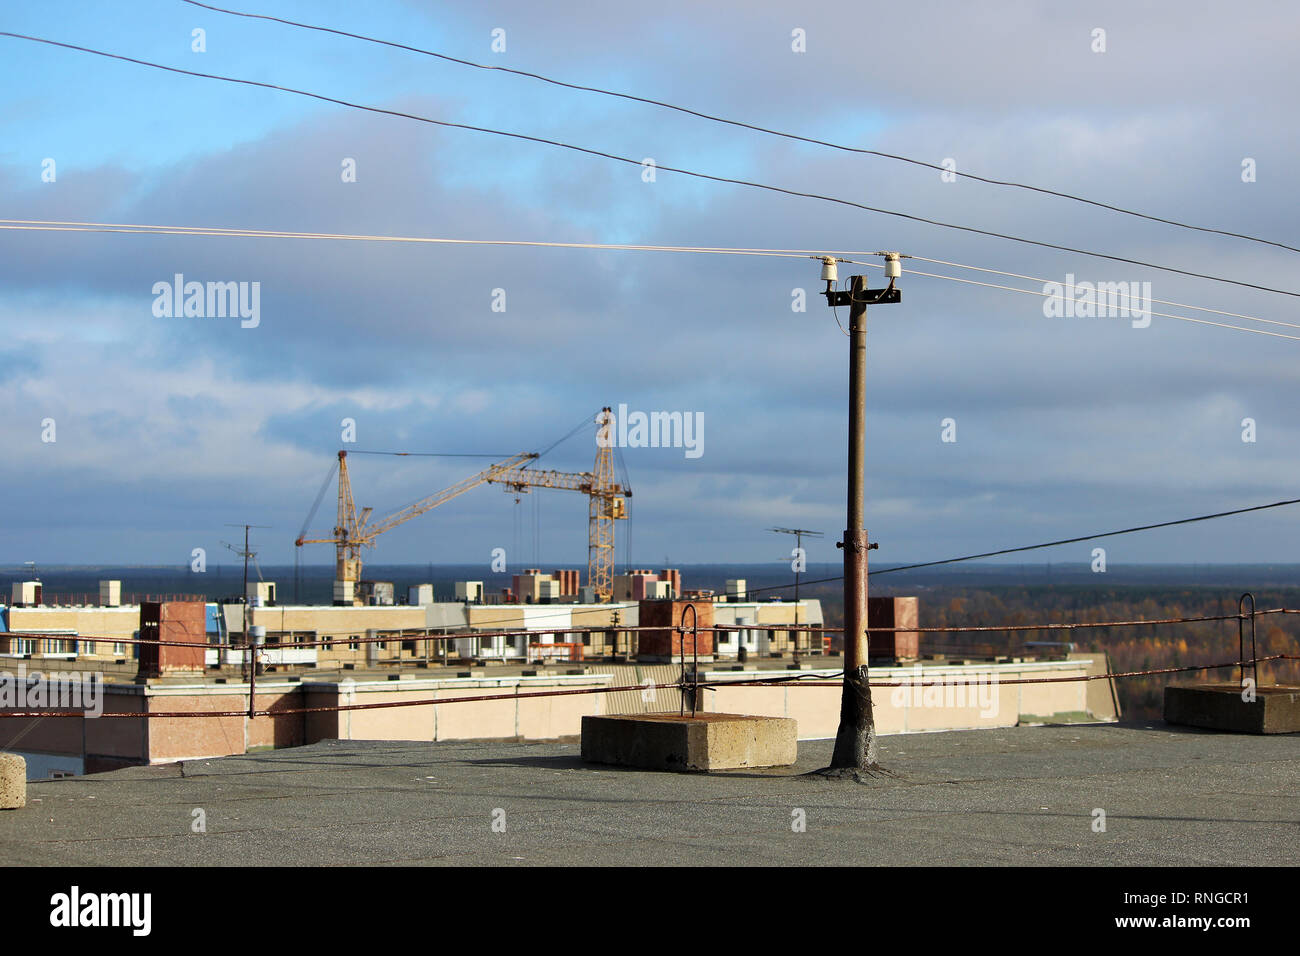 view from the flat roof of a multistory building covered with ruberoid, railing. column with electrical wires. view of the city of Arkhangelsk - Stock Image